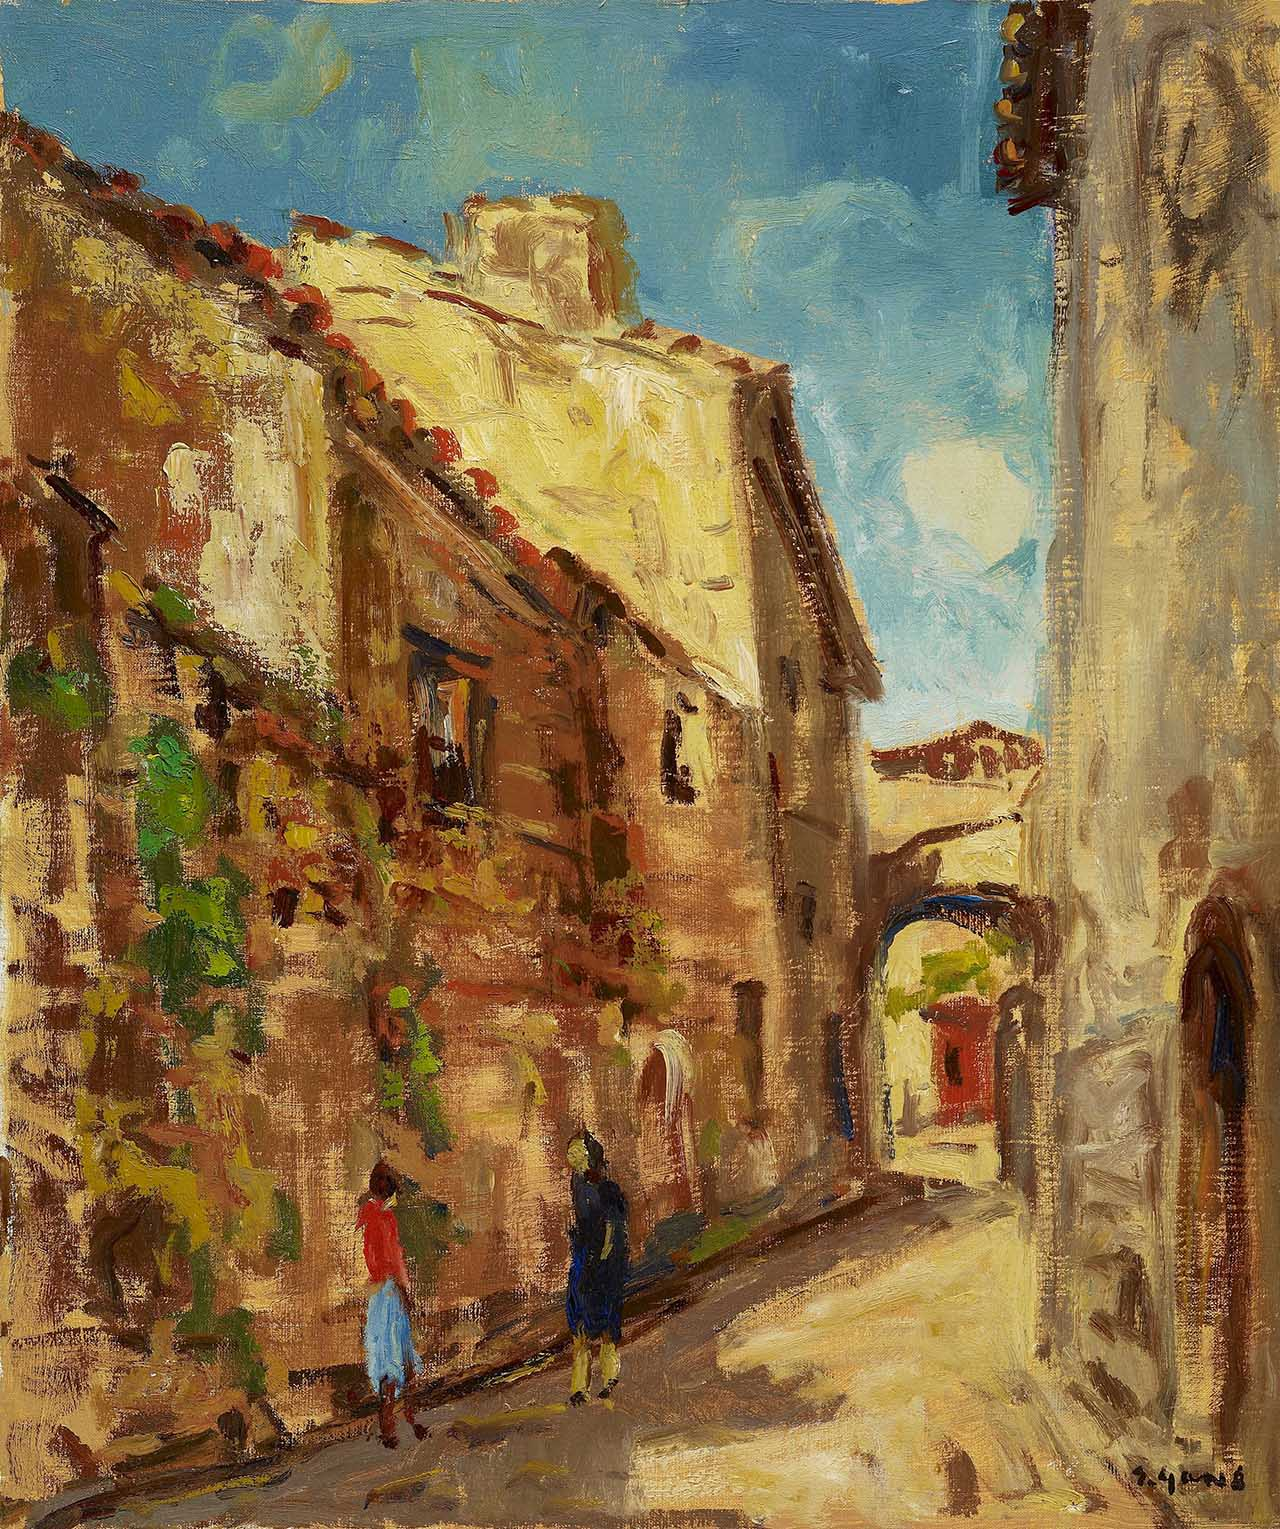 Spanish Old House Oil on canvas 72.7x60.8 cm